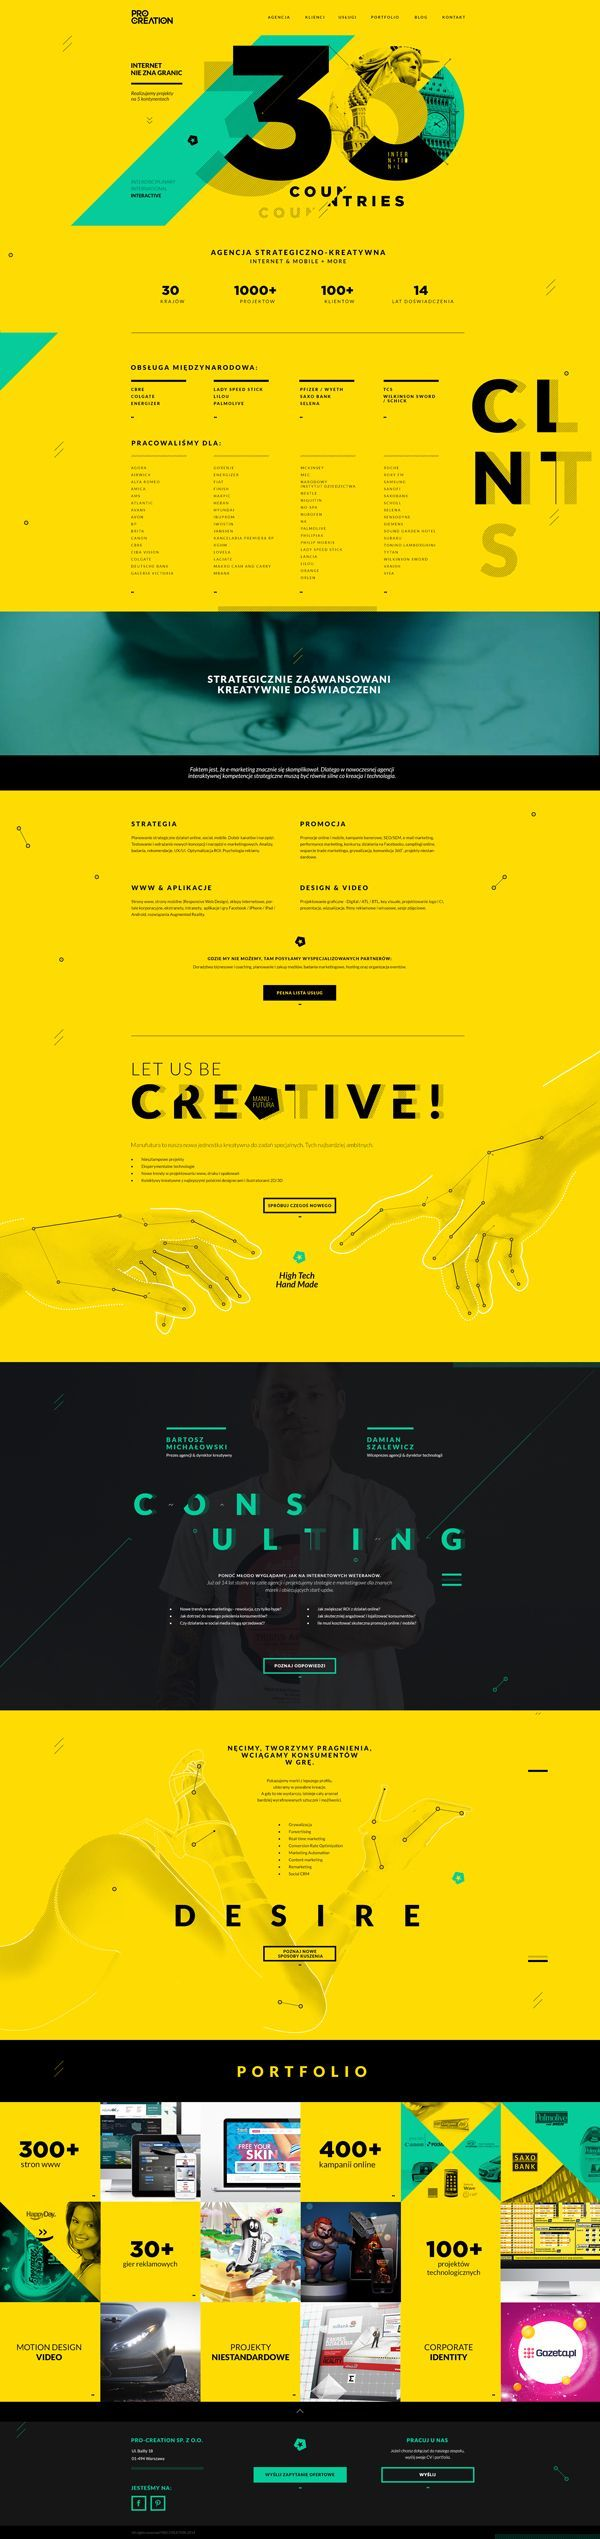 Pro Creation Website on Behance